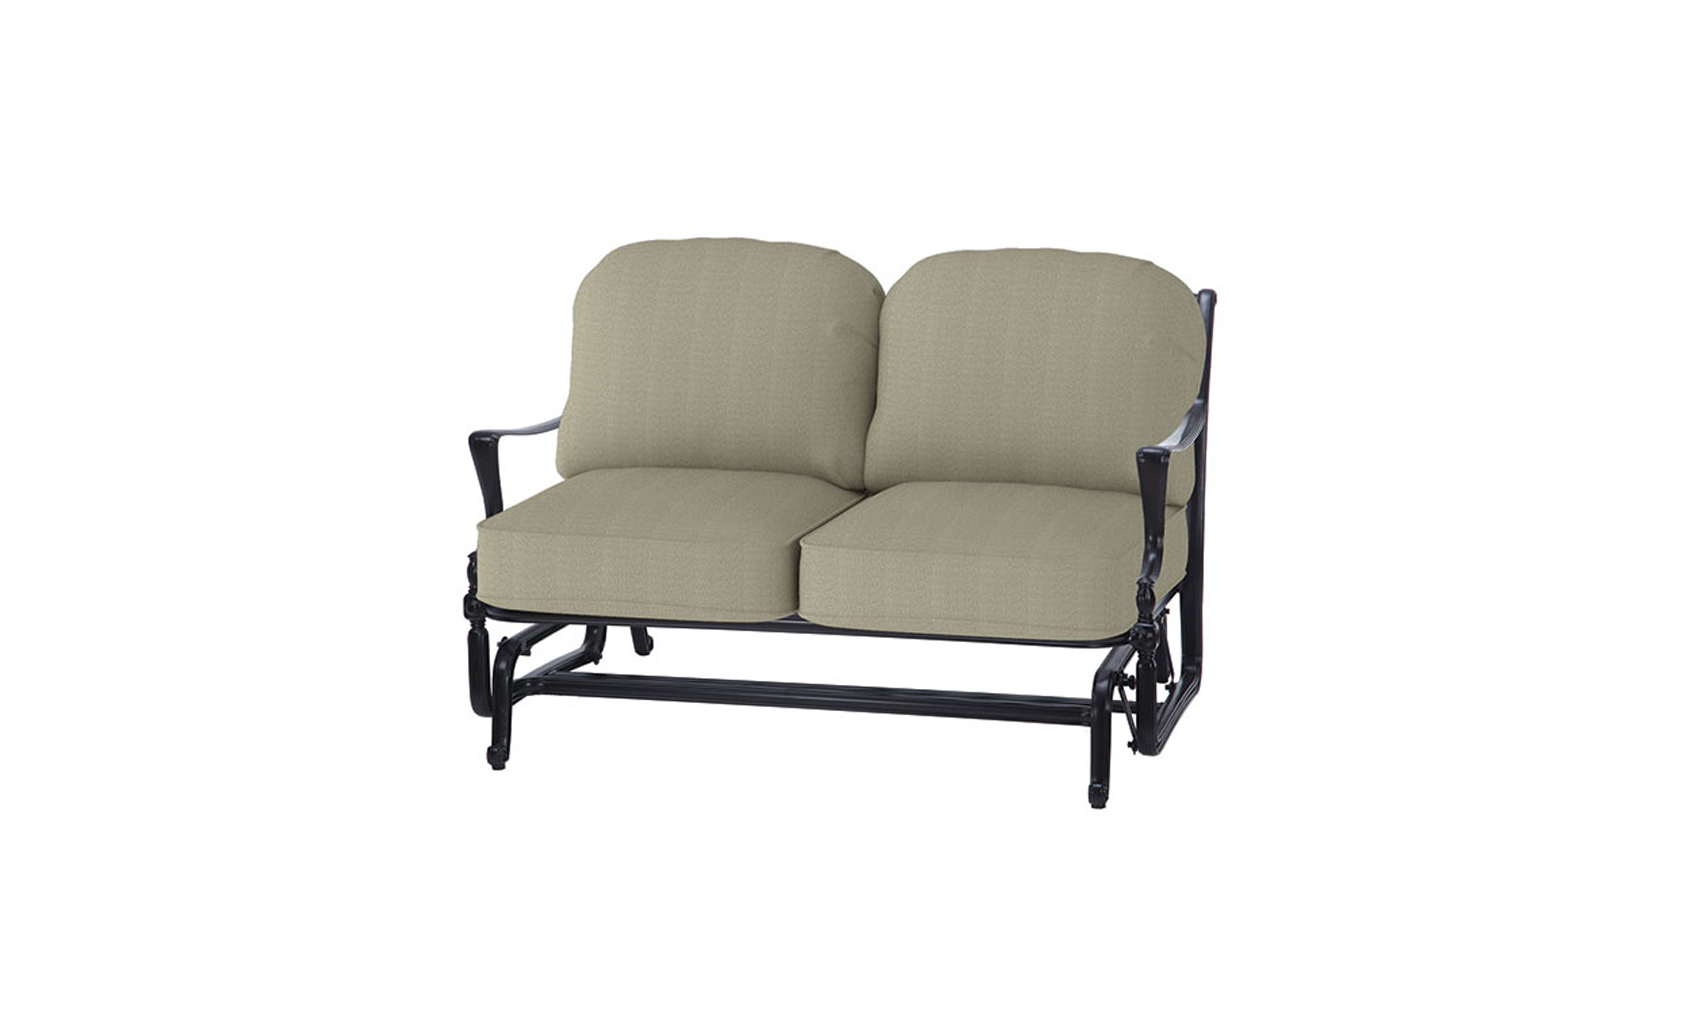 Bel Air Cushion Loveseat Glider Outdoor Living Concepts